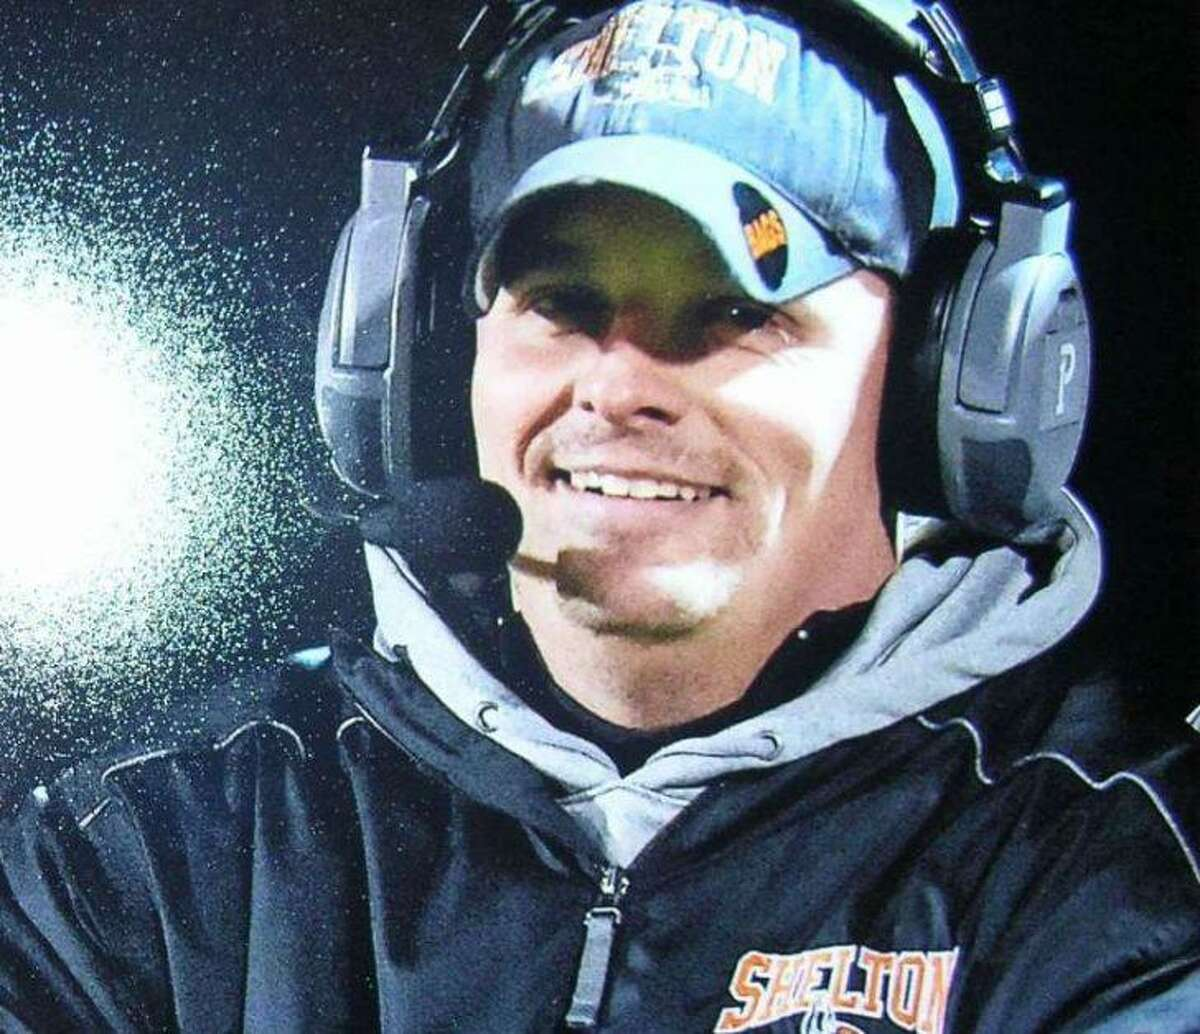 Coach Mike DeFelice hopes Shelton football can return to the field for practice in the spring.